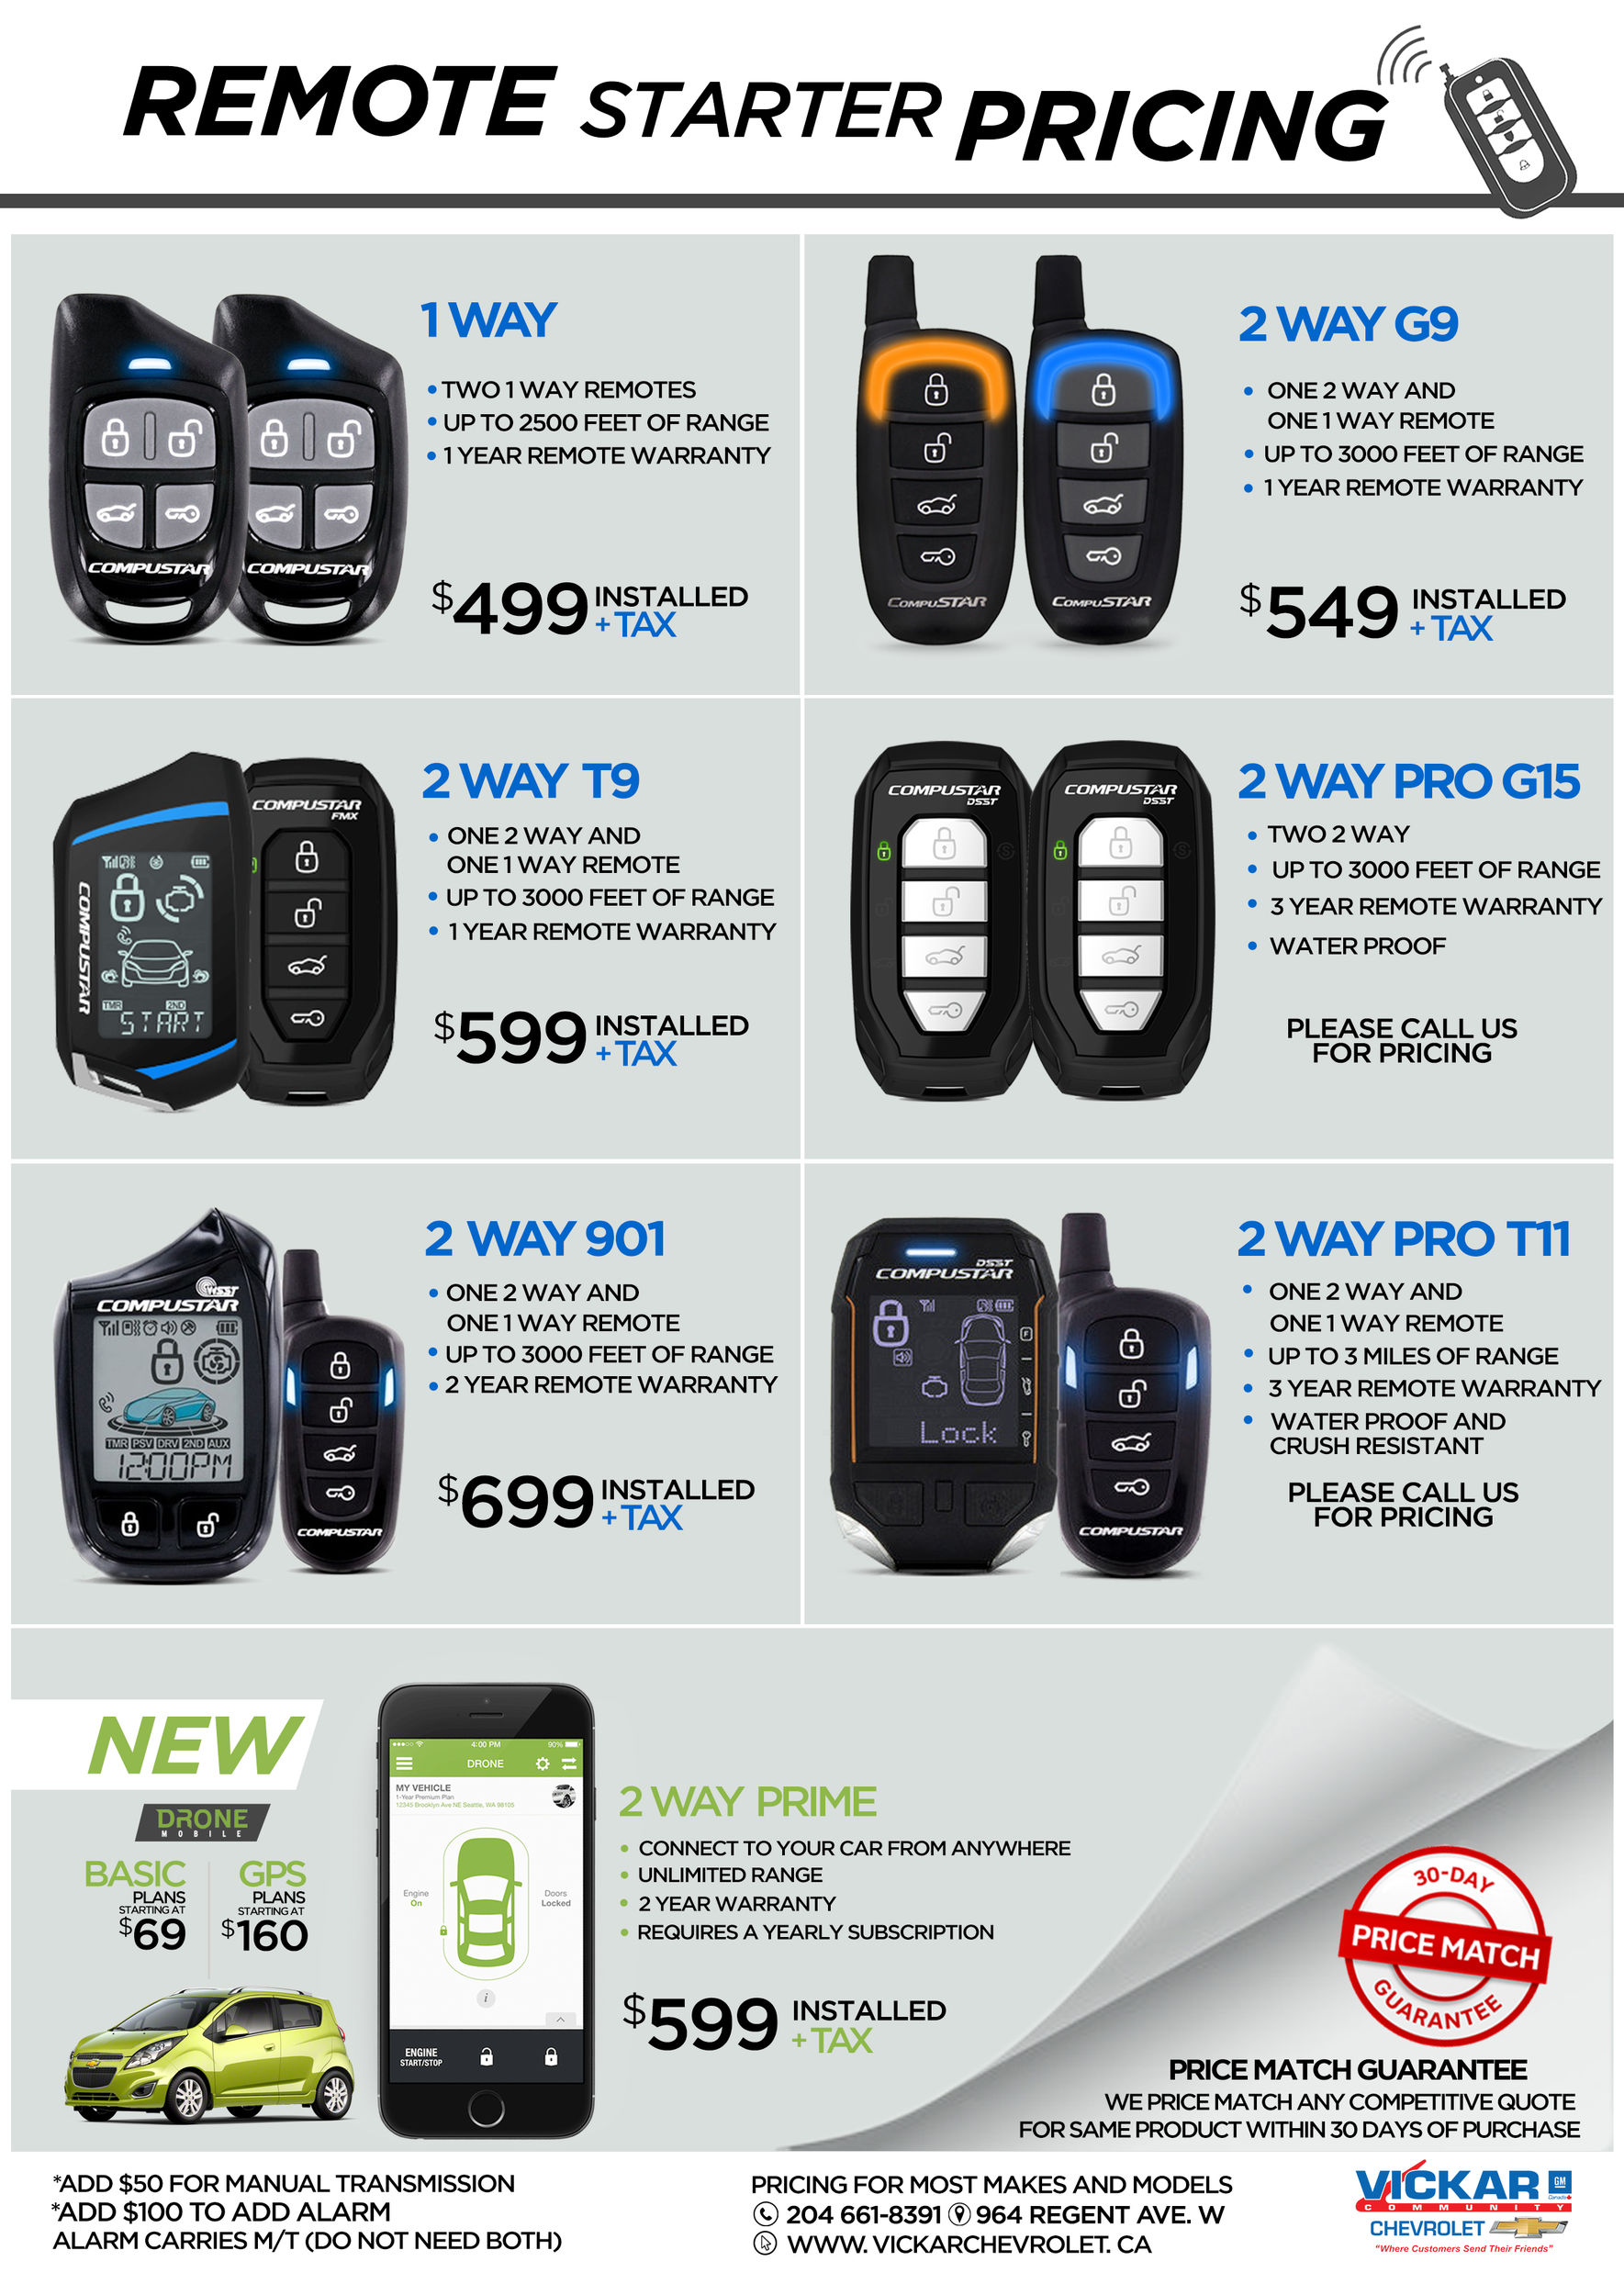 Vickar Community Chevrolet's remote starters will warm it for you. With  many remote starters to choose from, we have selected these to get you  started.